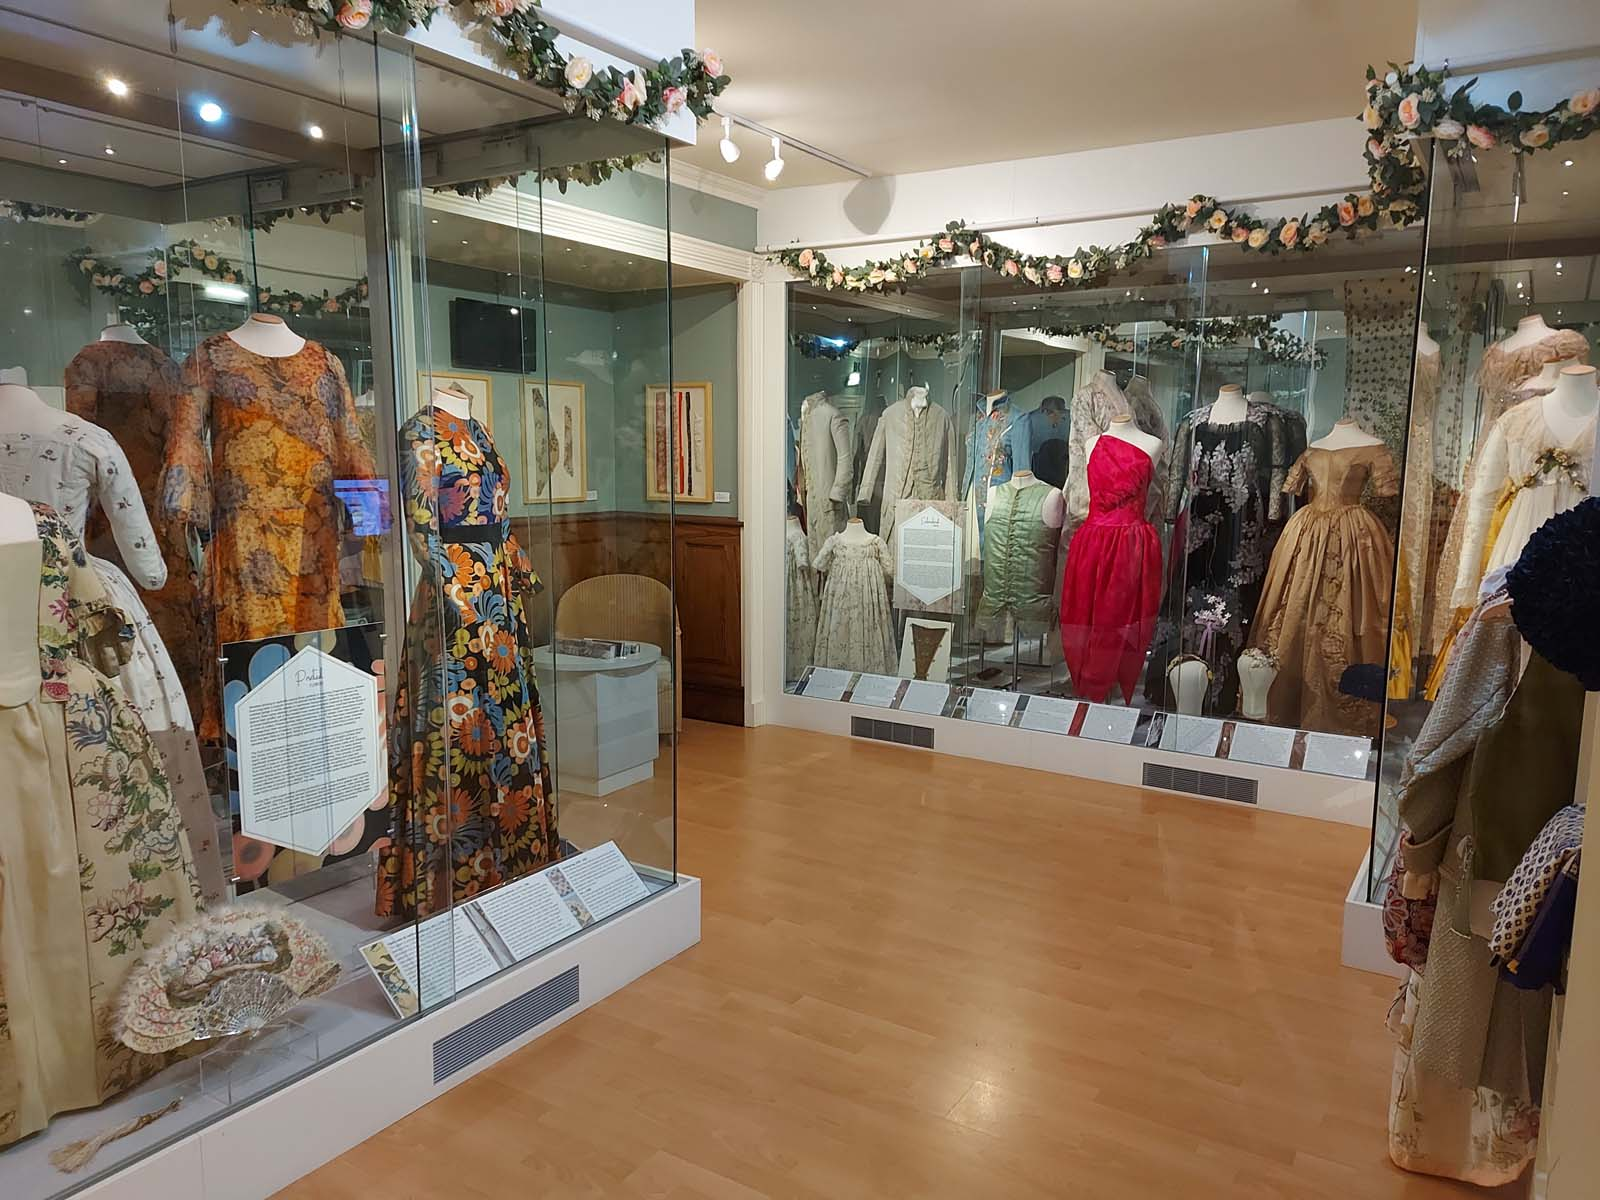 gallery shot of cases with dresses and other costume displayed within them